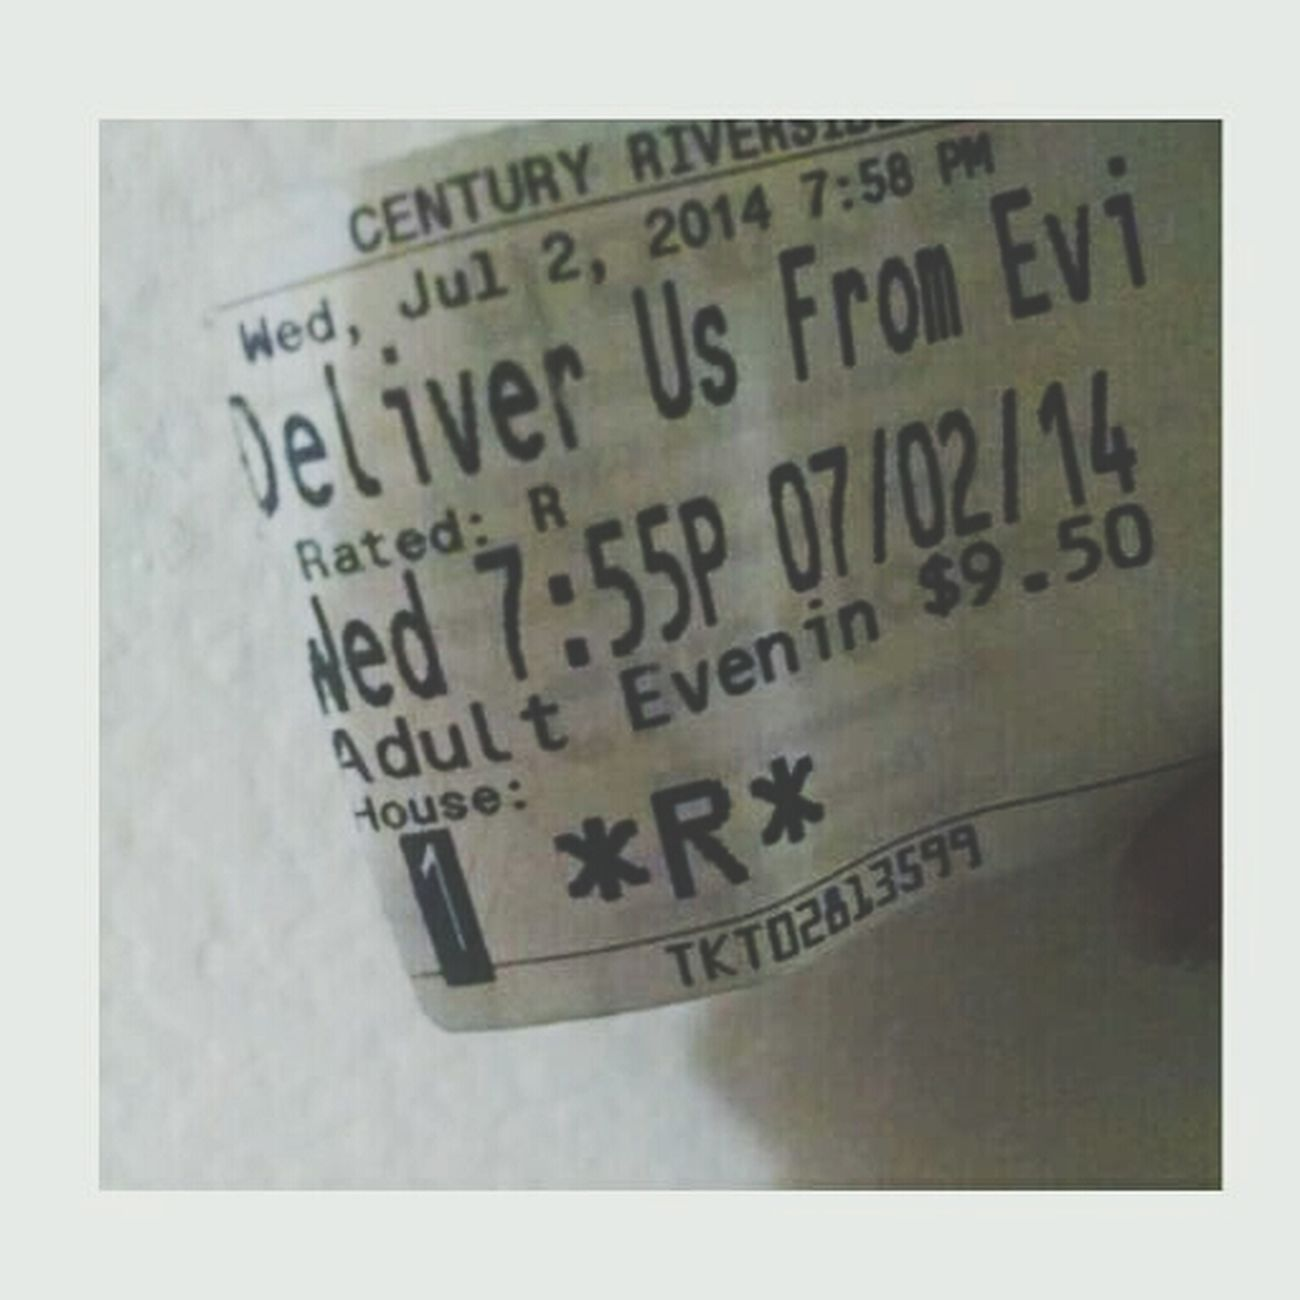 Yesterday, I experienced an exorcism... Deliver Us From Evil Trippy Creepy Movie